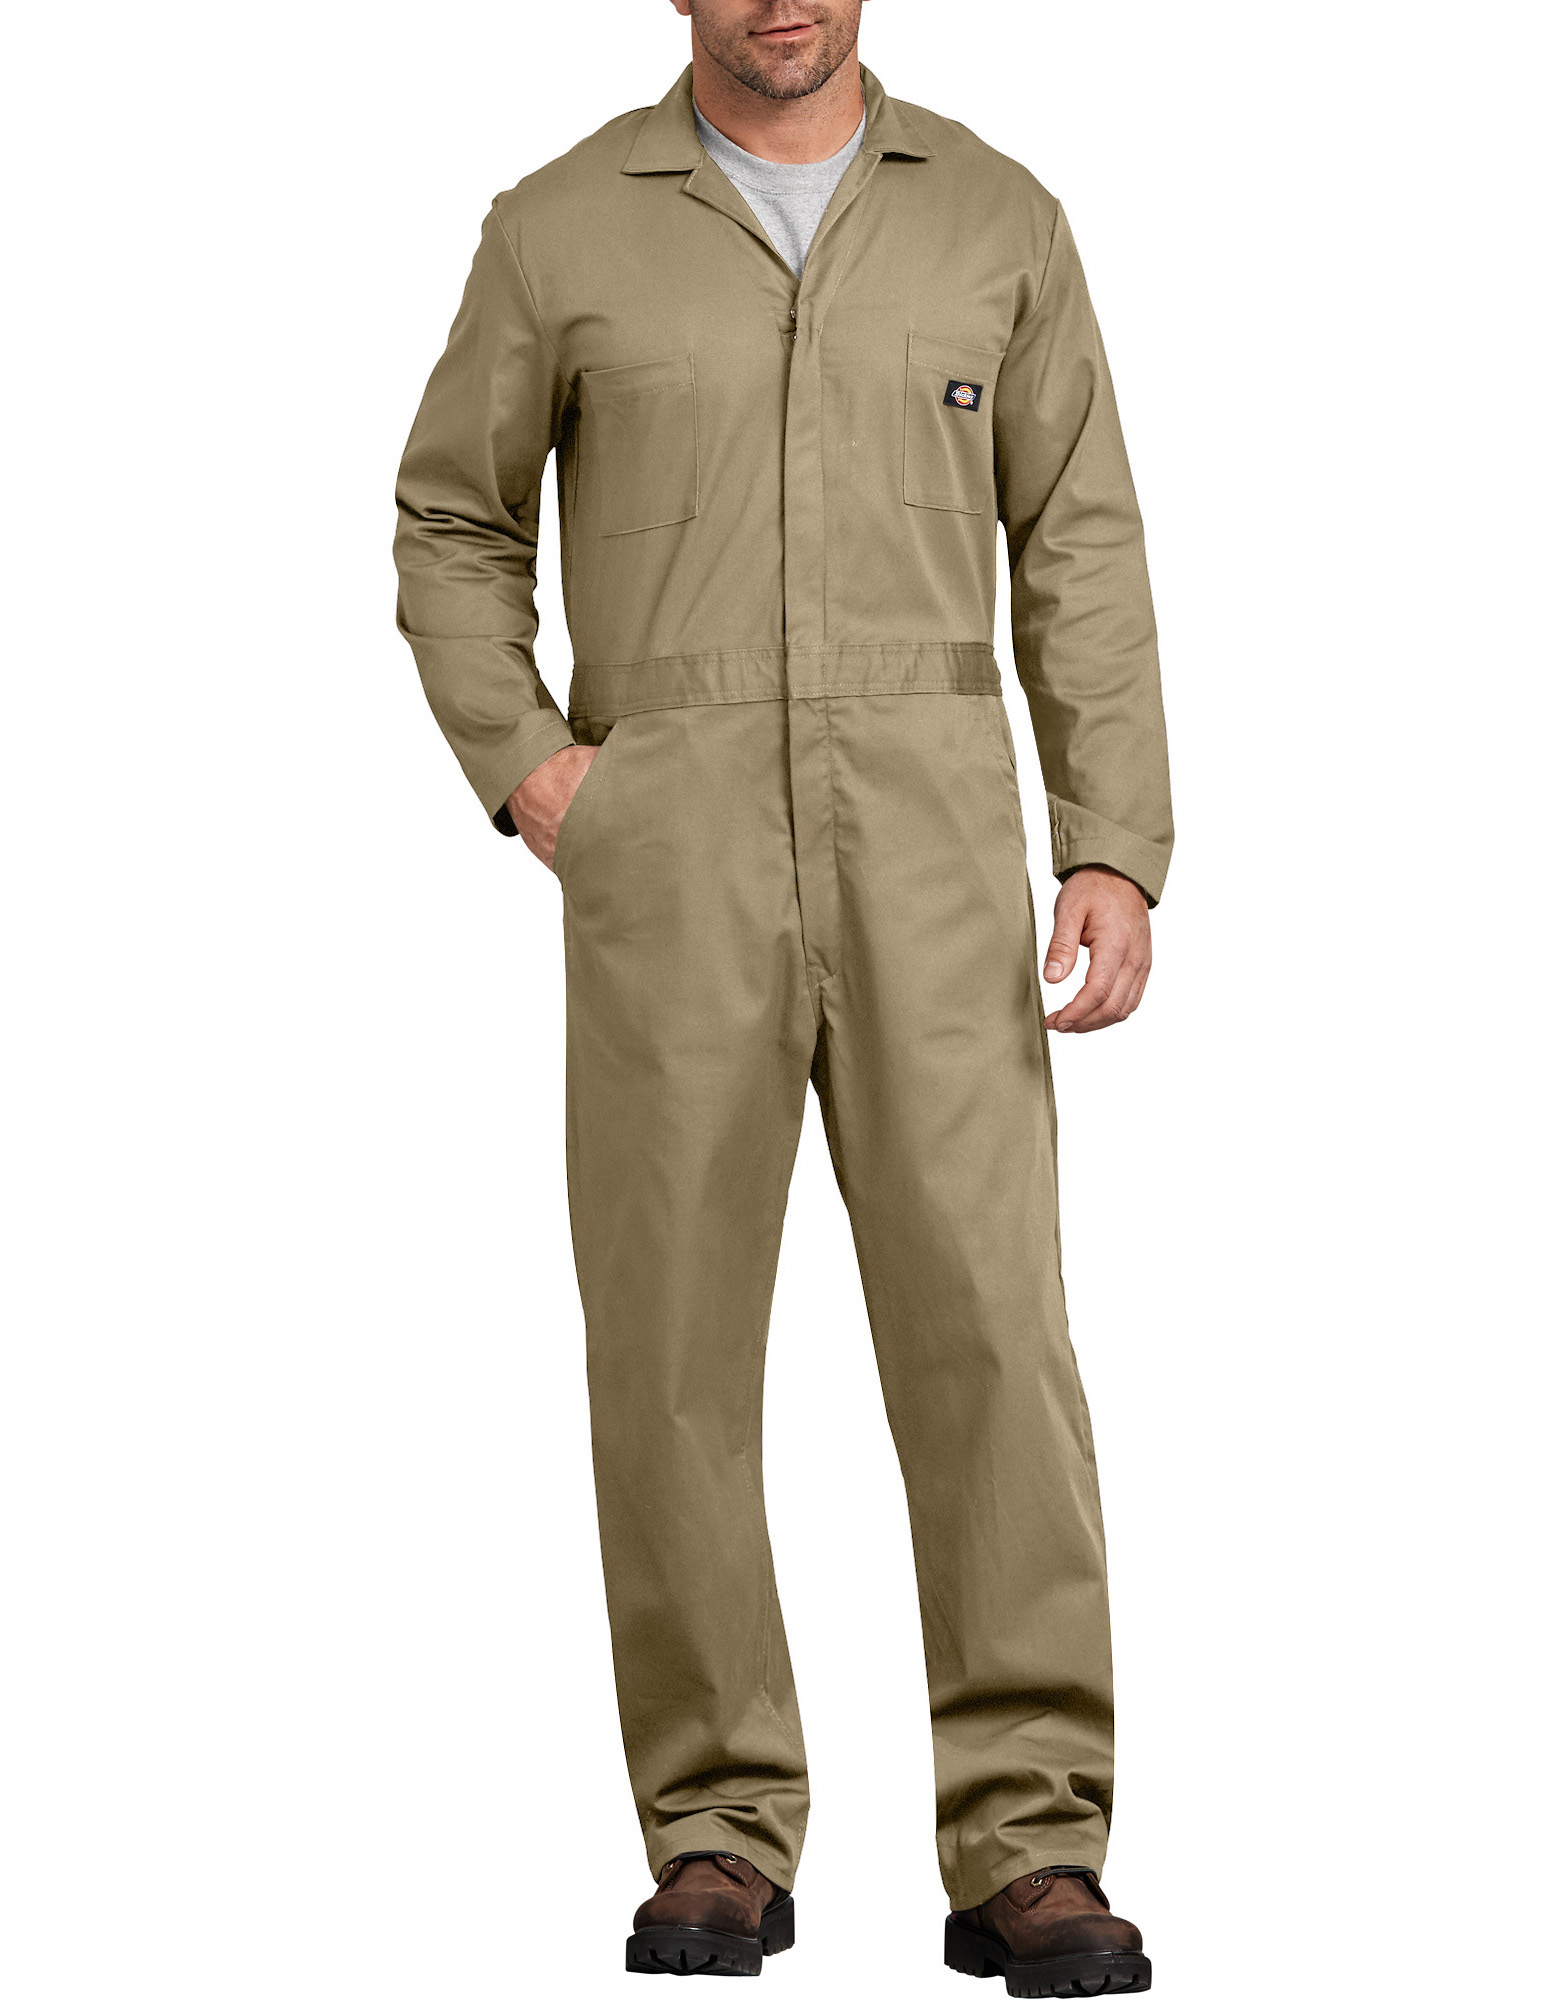 Cotton Long Sleeve Coveralls - Military Khaki (KH)